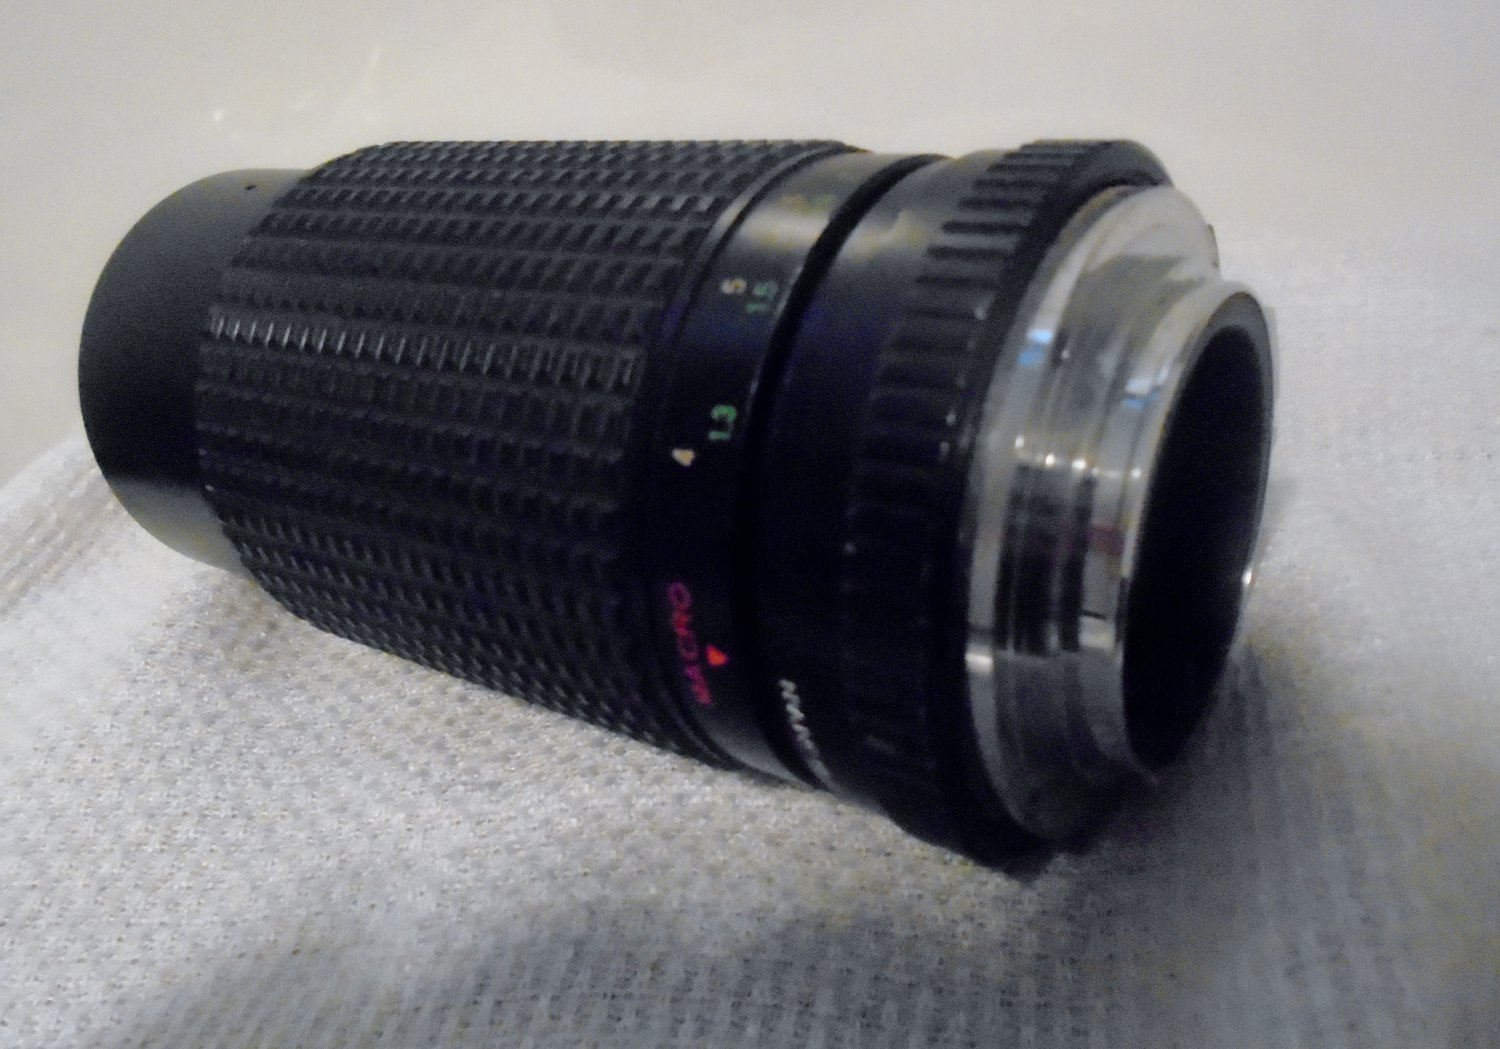 Focal MC Auto Zoom 1:4.5 80-200mm No. K8516058